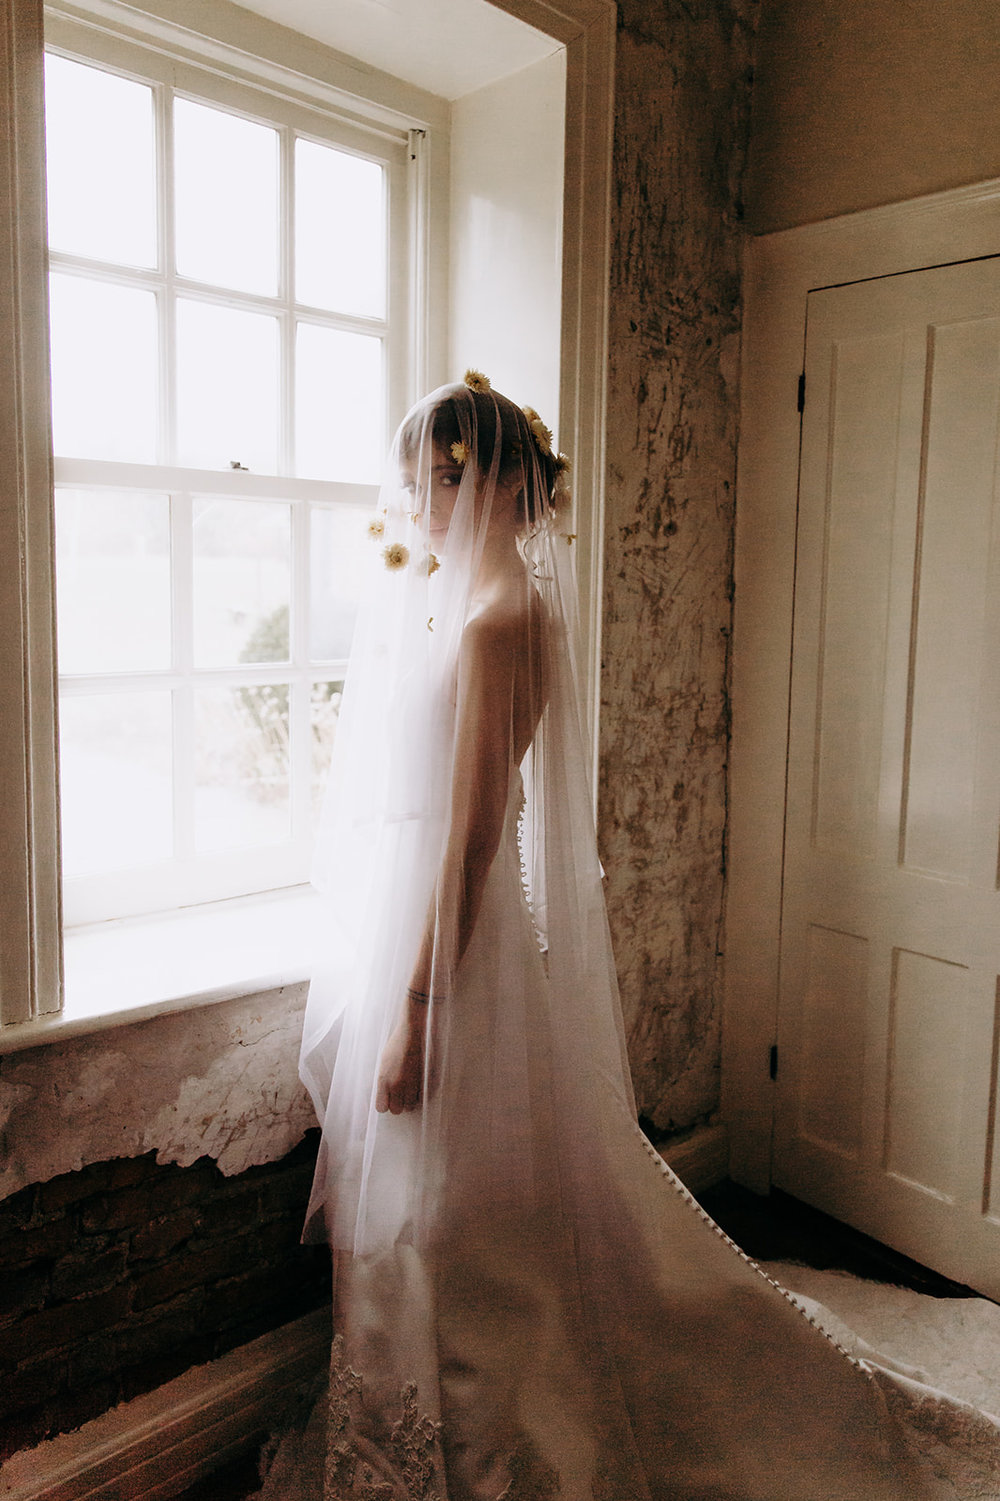 lea-ann-belter-bridal-editorial-windrift-hall-wedding-photographer-new-york-292.jpg